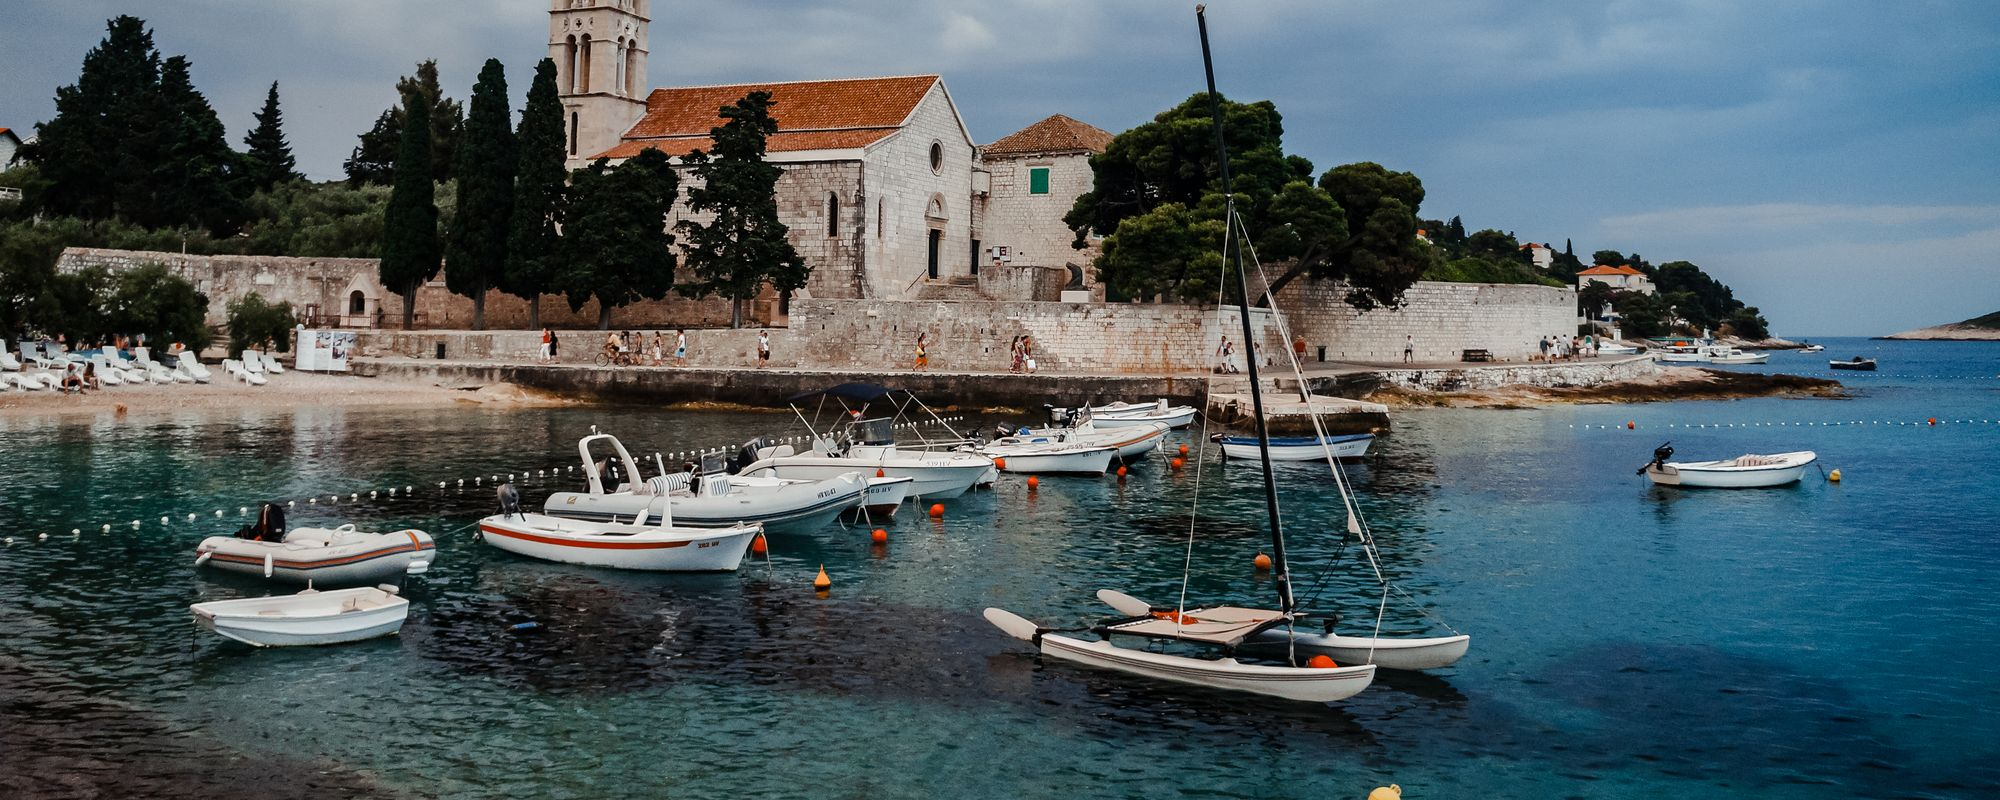 The harbour in Bol, a Dalmatian island